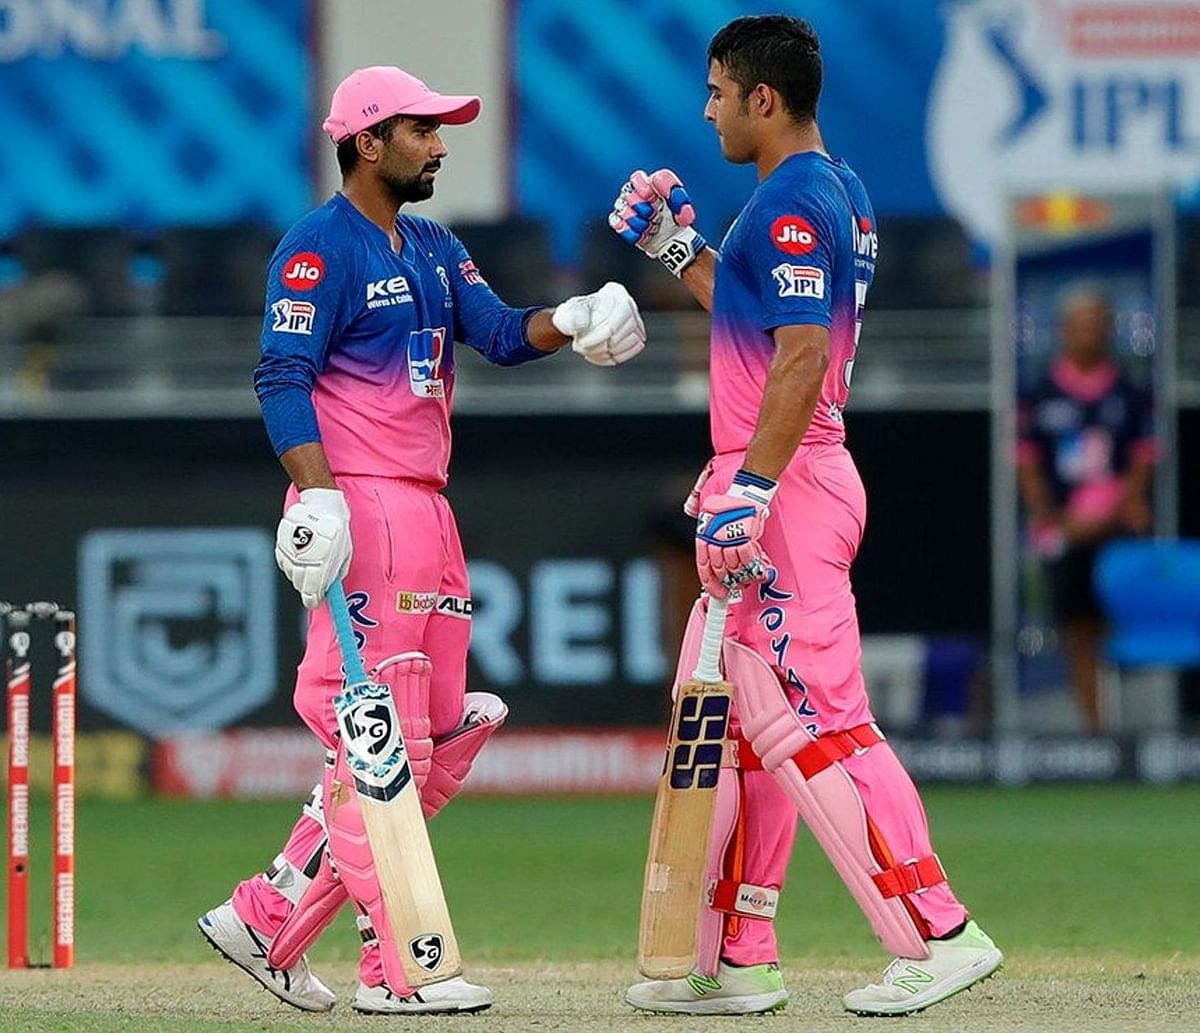 Rahul Tewatia and Riyan Parag stitched an unbeaten 47-ball 85-run partnership to take their team over the line